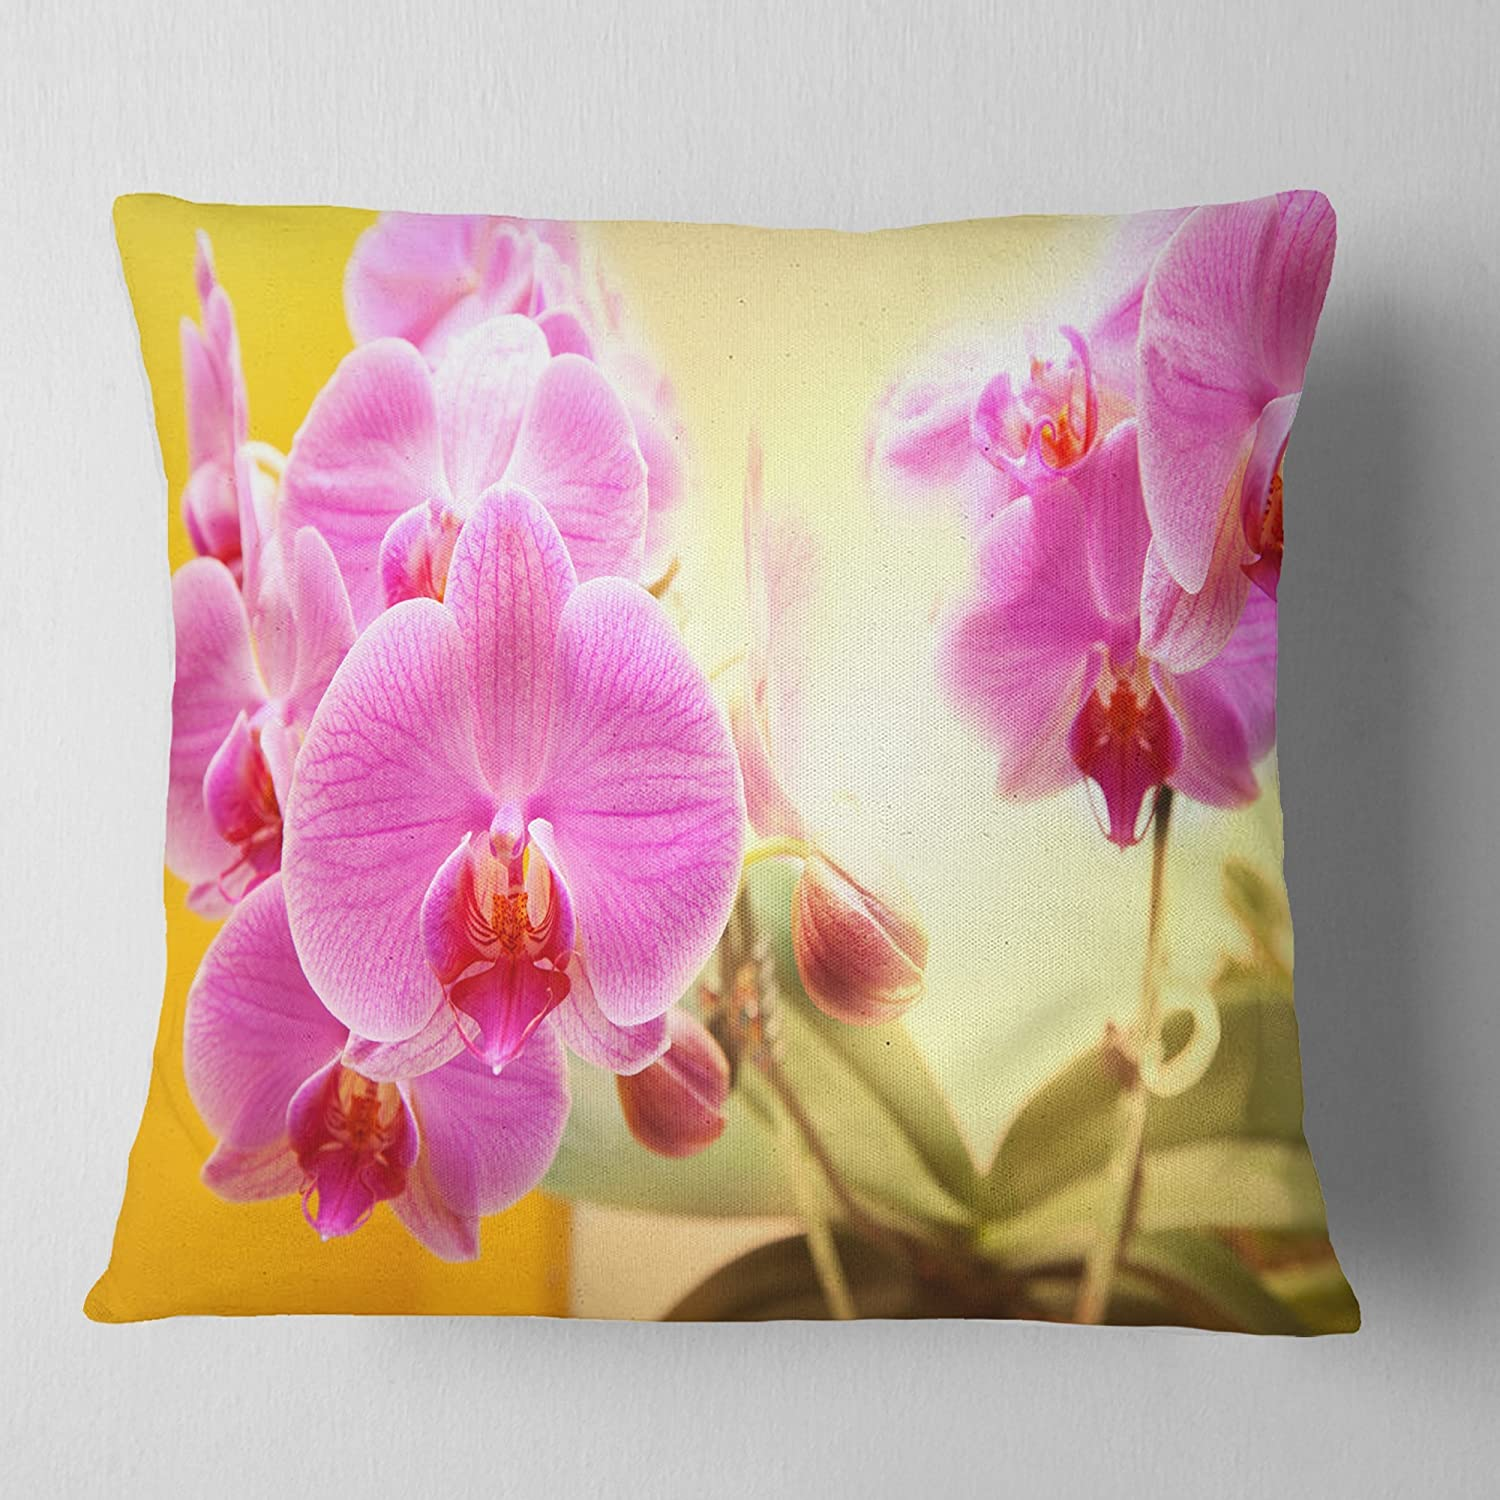 Sofa Throw Pillow 16 in Insert Printed On Both Side in Designart CU12591-16-16 Blooming Purple Orchid Flowers Floral Cushion Cover for Living Room x 16 in